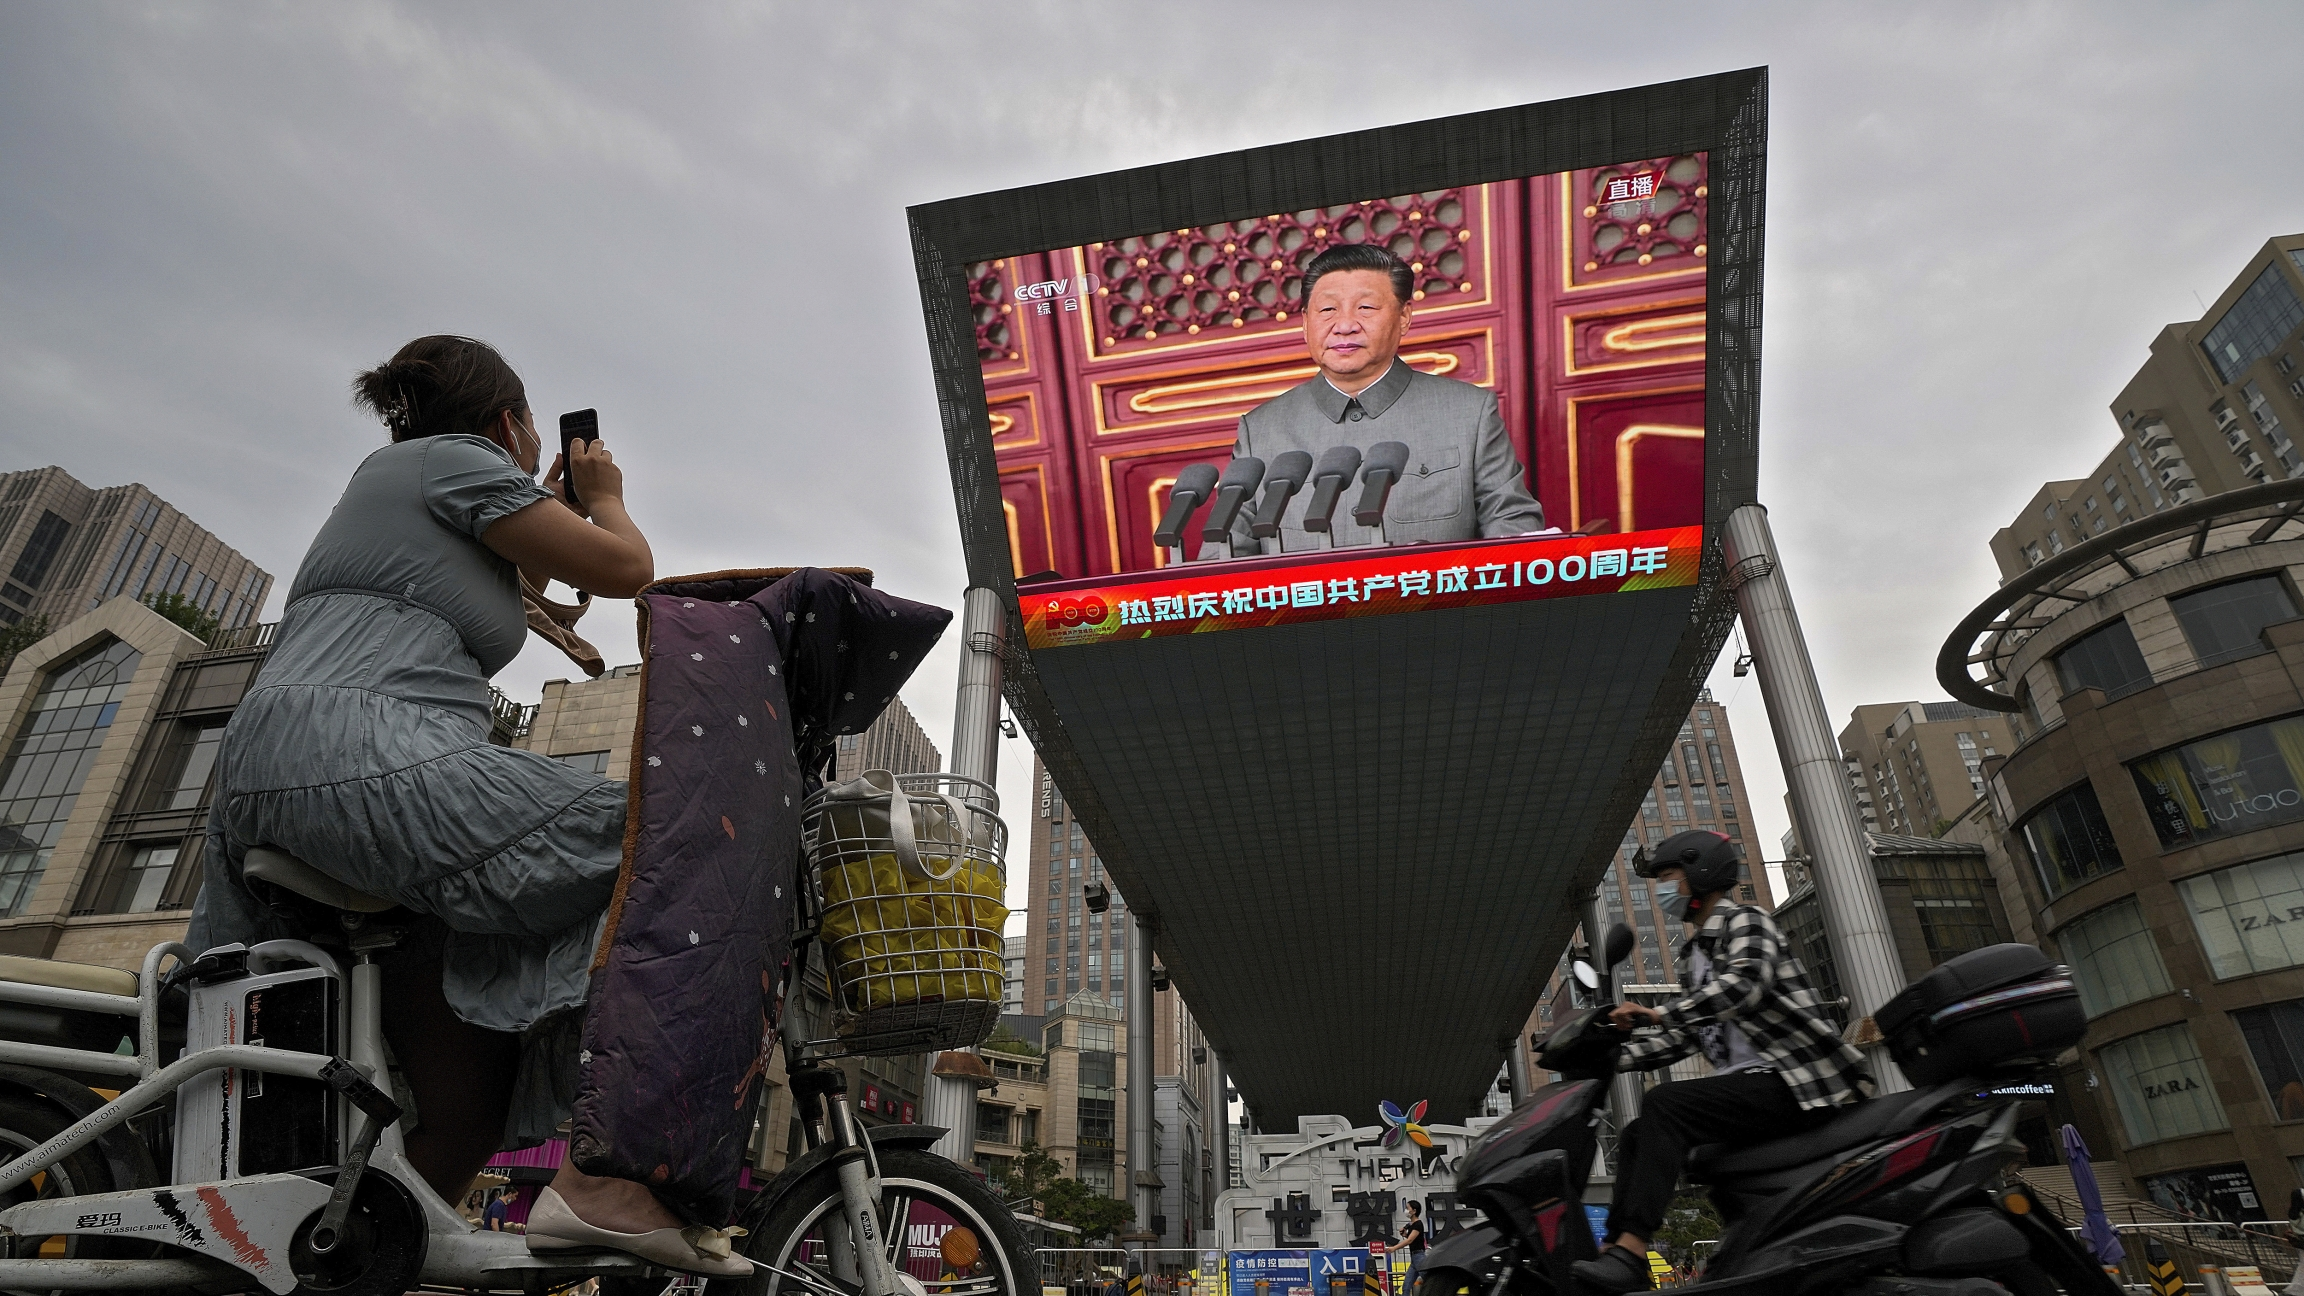 A woman on her electric-powered scooter films a large video screen outside a shopping mall showing Chinese President Xi Jinping speaking during an event to commemorate the 100th anniversary of China's Communist Party at Tiananmen Square in Beijing.